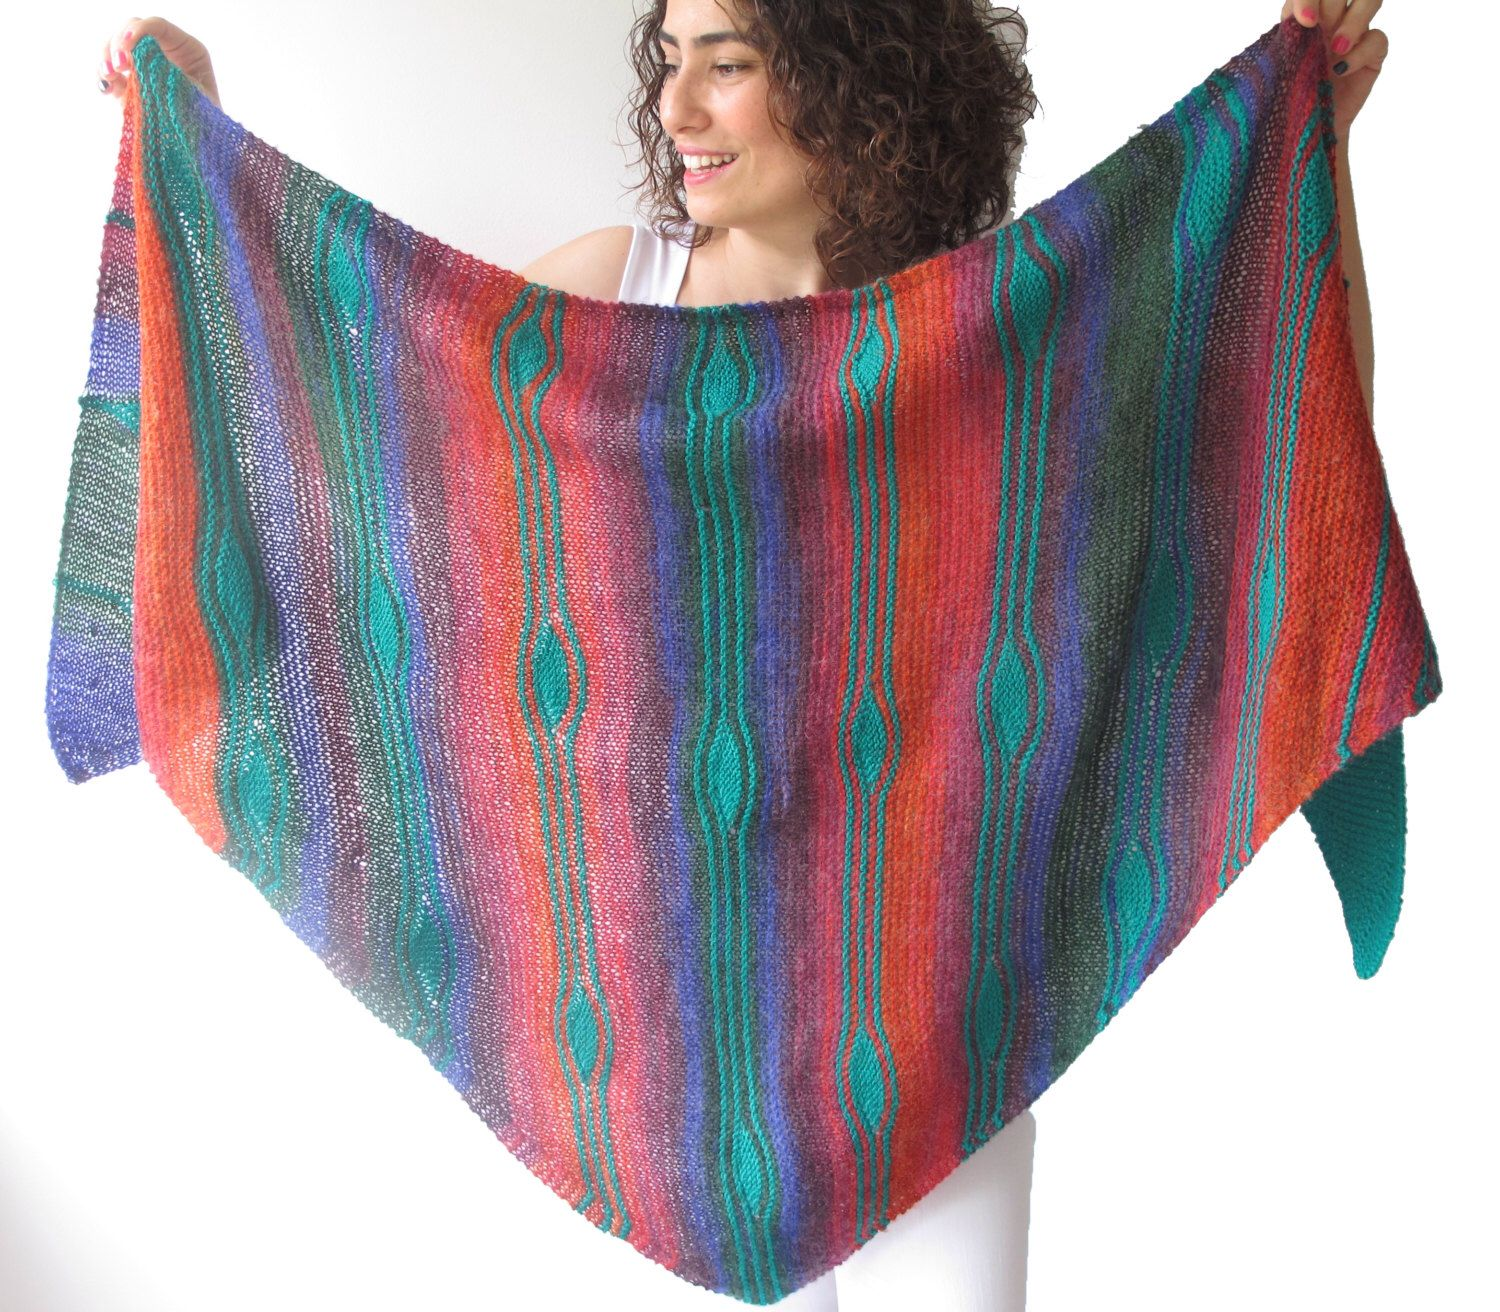 NEW! Assymetric Colorful Striped Shawl - Triangle Shawl by Afra by afra on Etsy https://www.etsy.com/listing/191775642/new-assymetric-colorful-striped-shawl